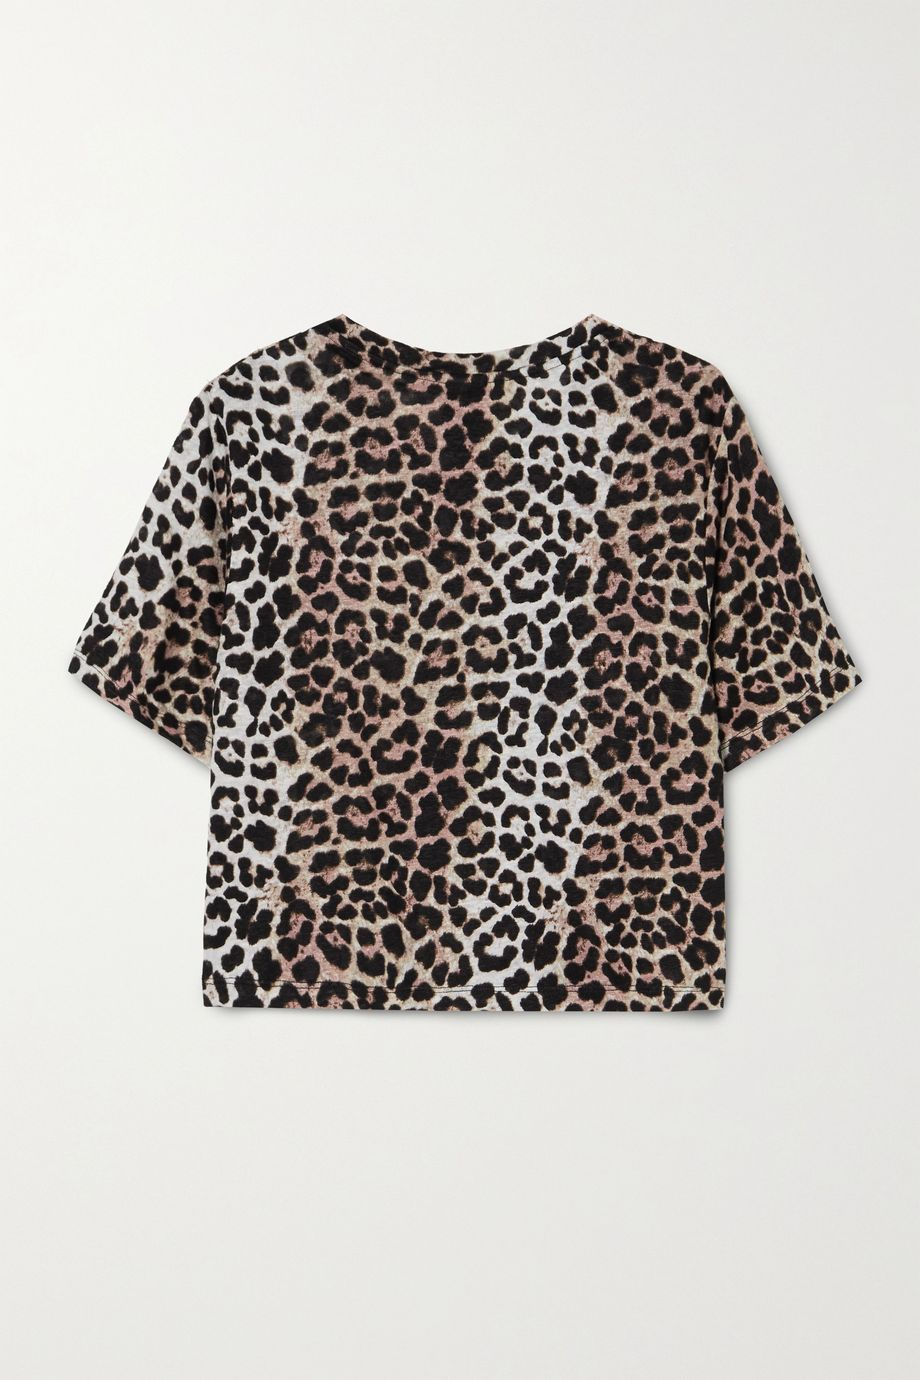 P.E NATION Bar Down cropped printed linen top